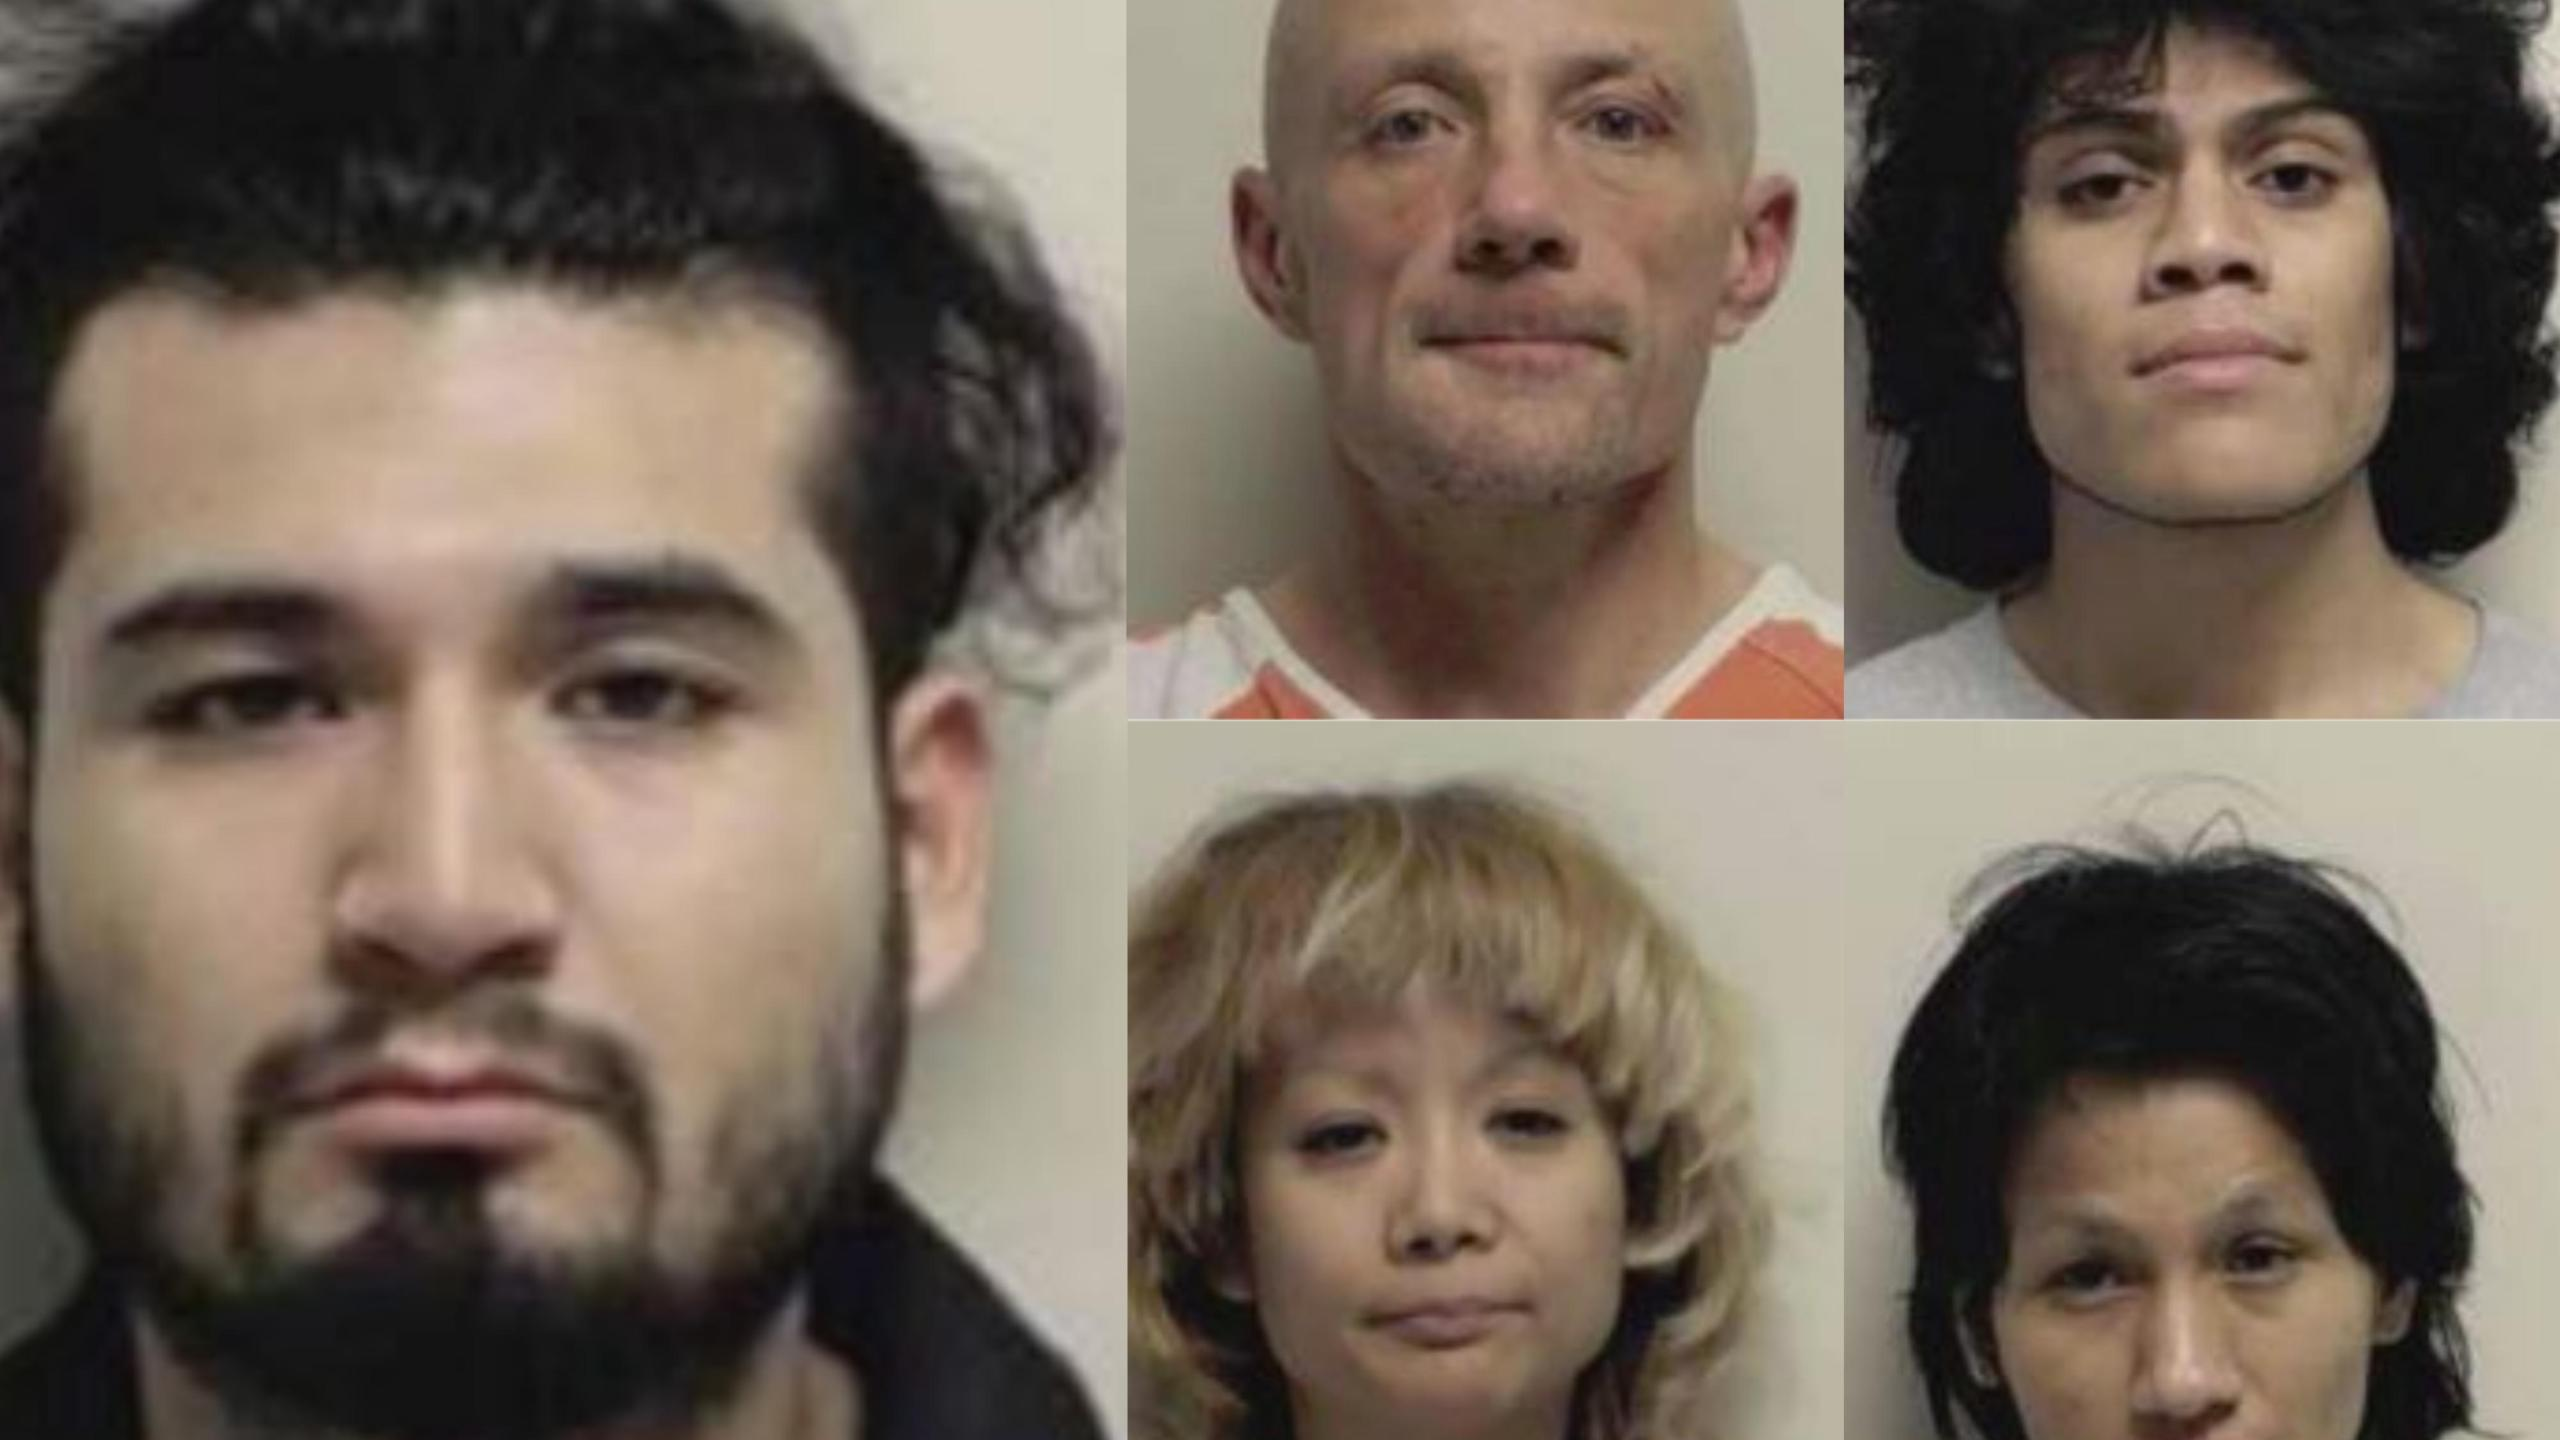 Narcotics worth thousands of dollars seized, 5 arrested in Payson